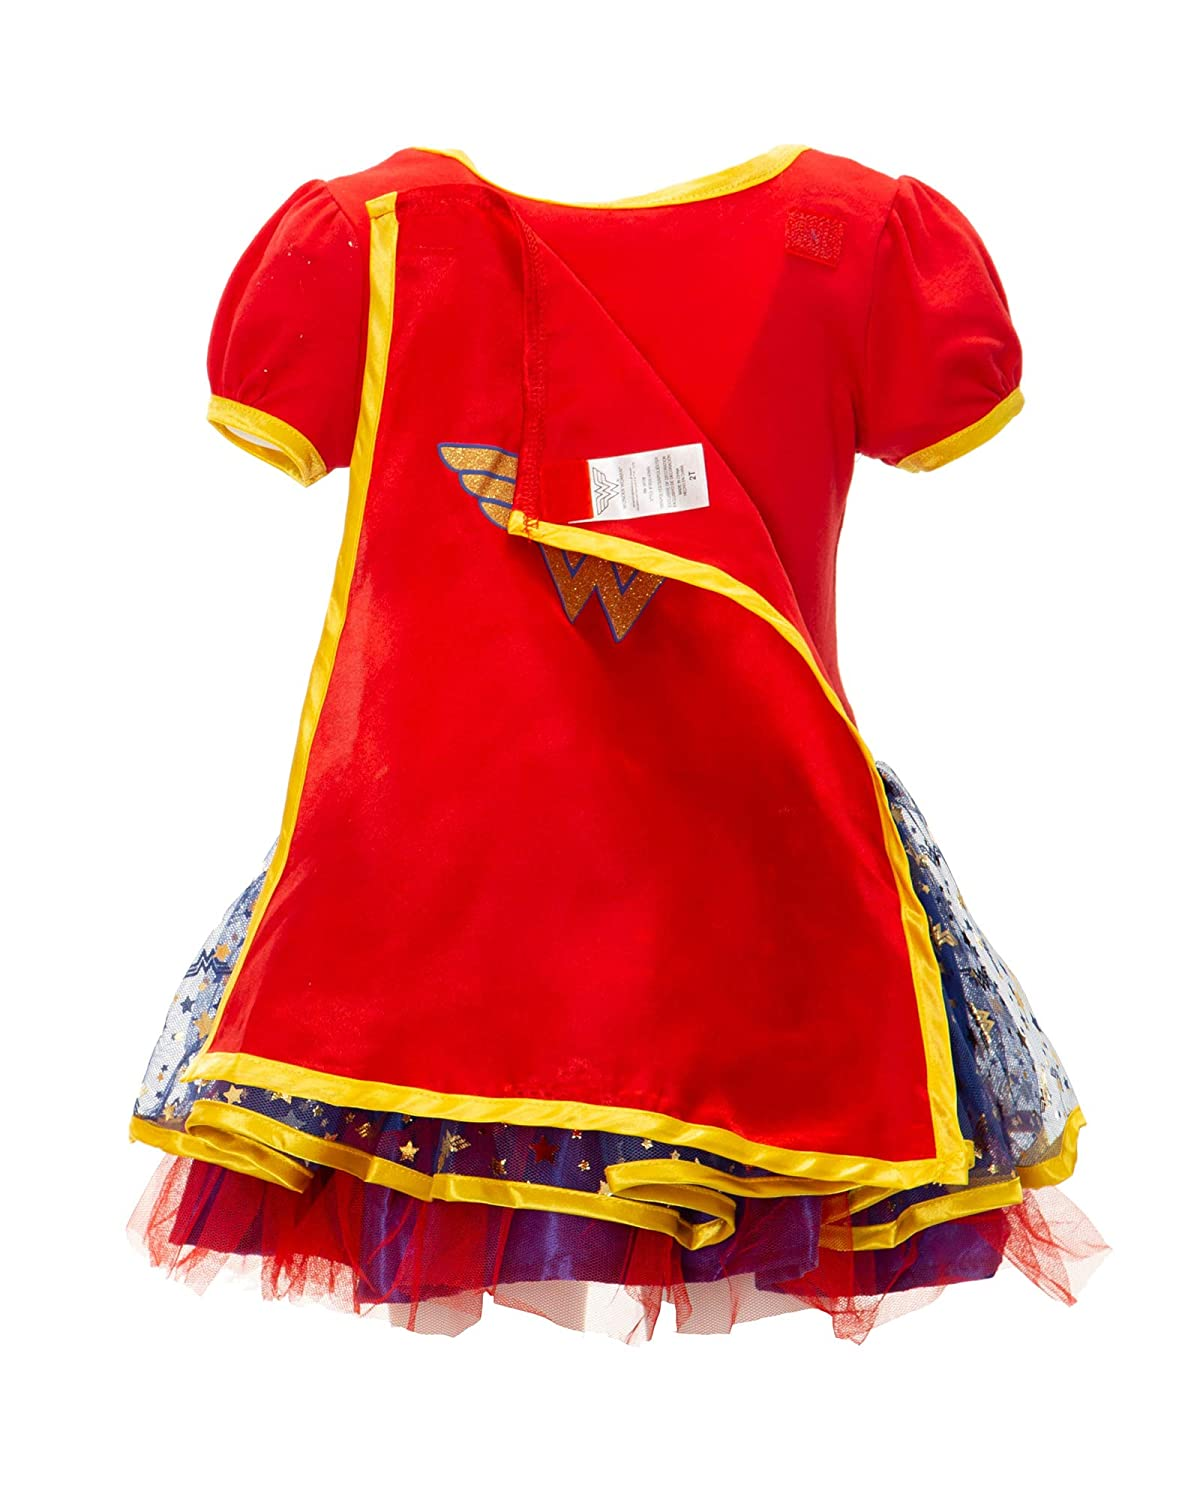 Red Wonder Woman Girls Costume Dress with Gold Tiara Headband and Cape